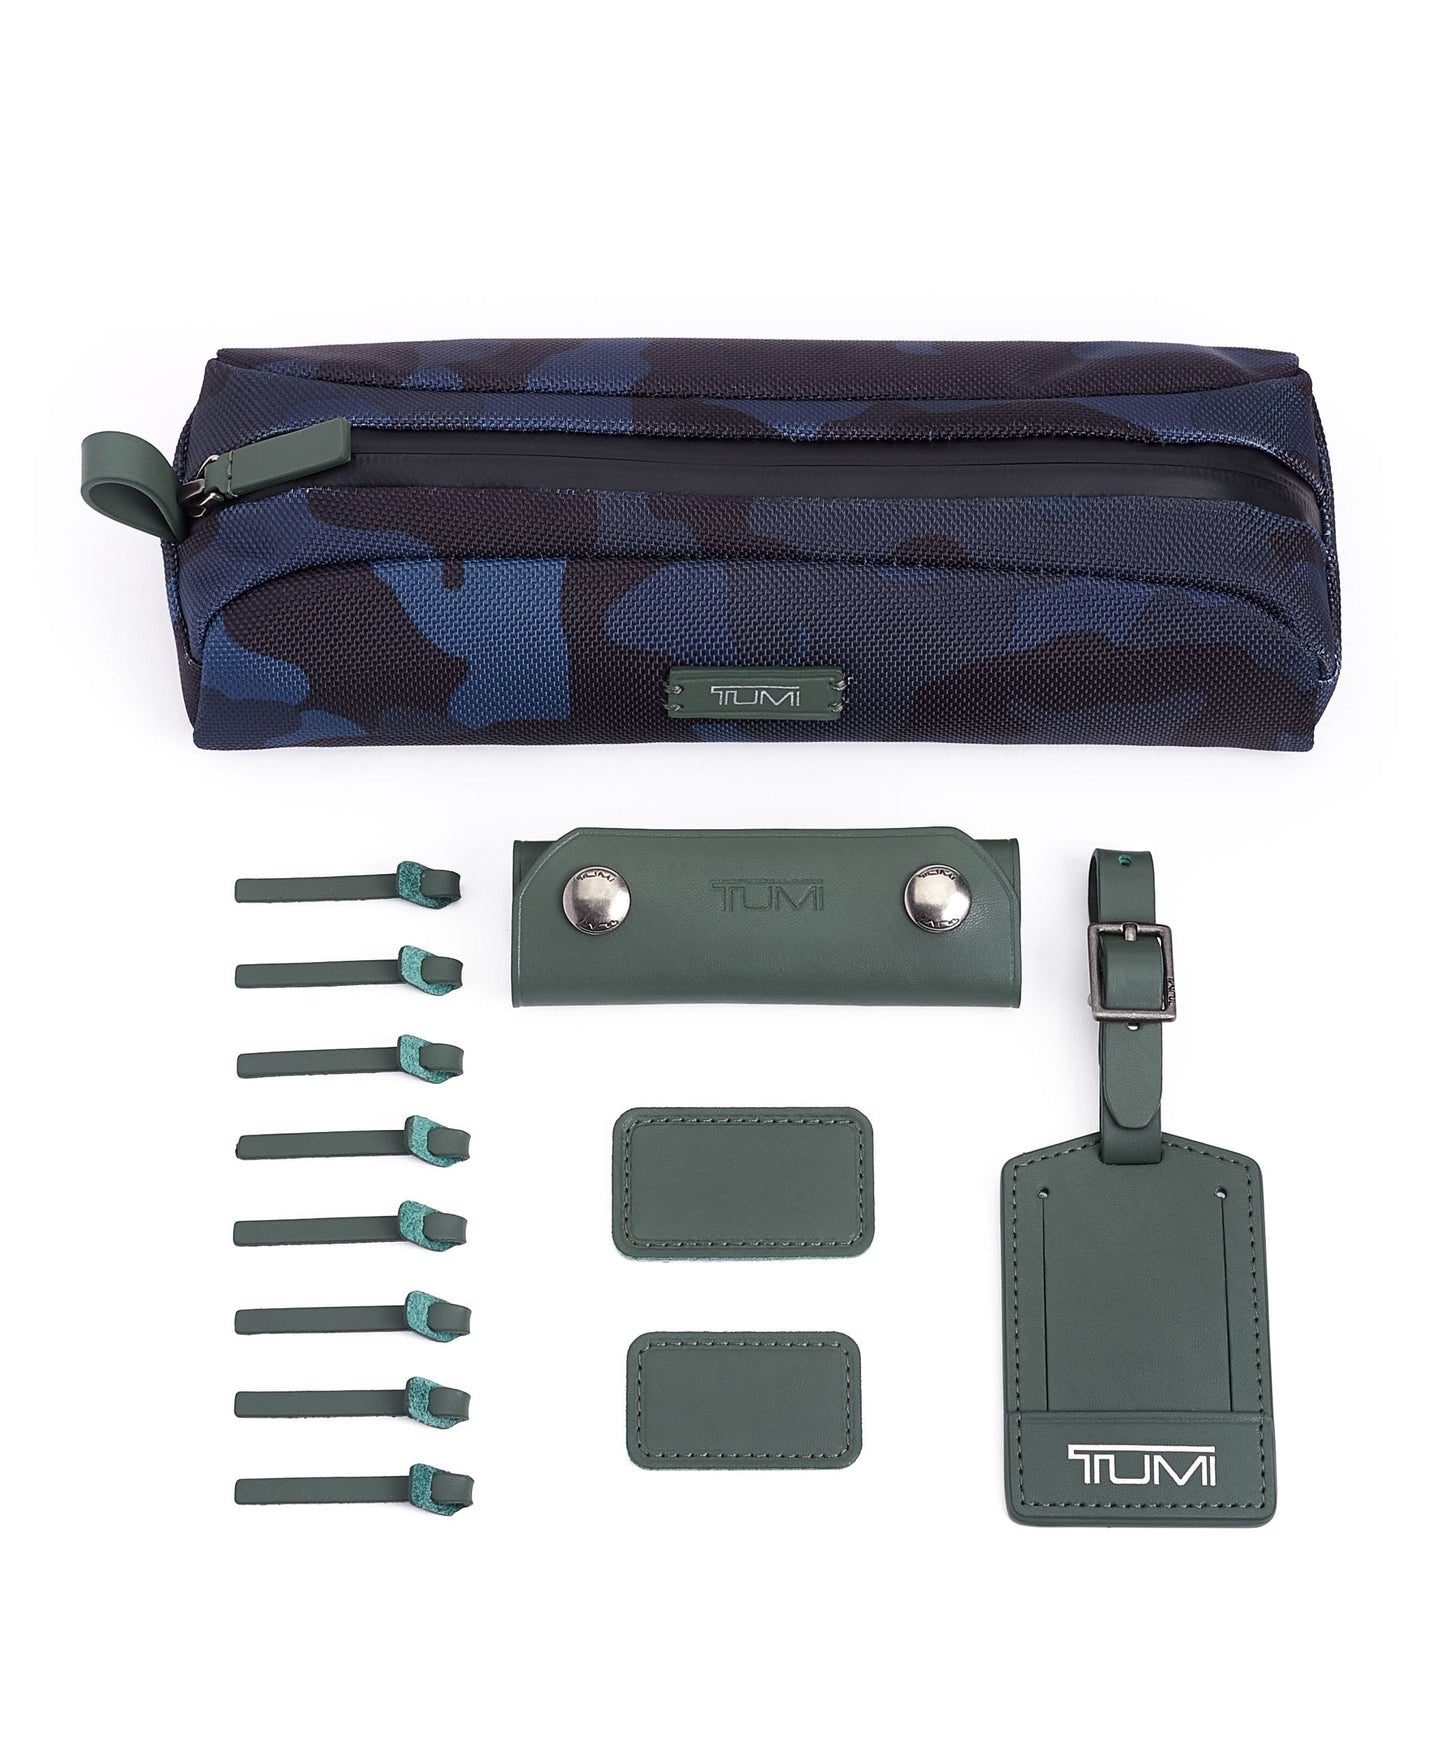 TUMI Accents Kit